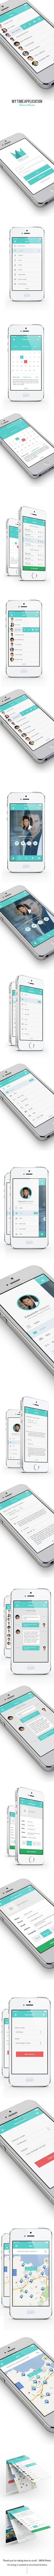 My time App ( Flat Mobile UI Kit) download available by Ayoub Elred, via Behance